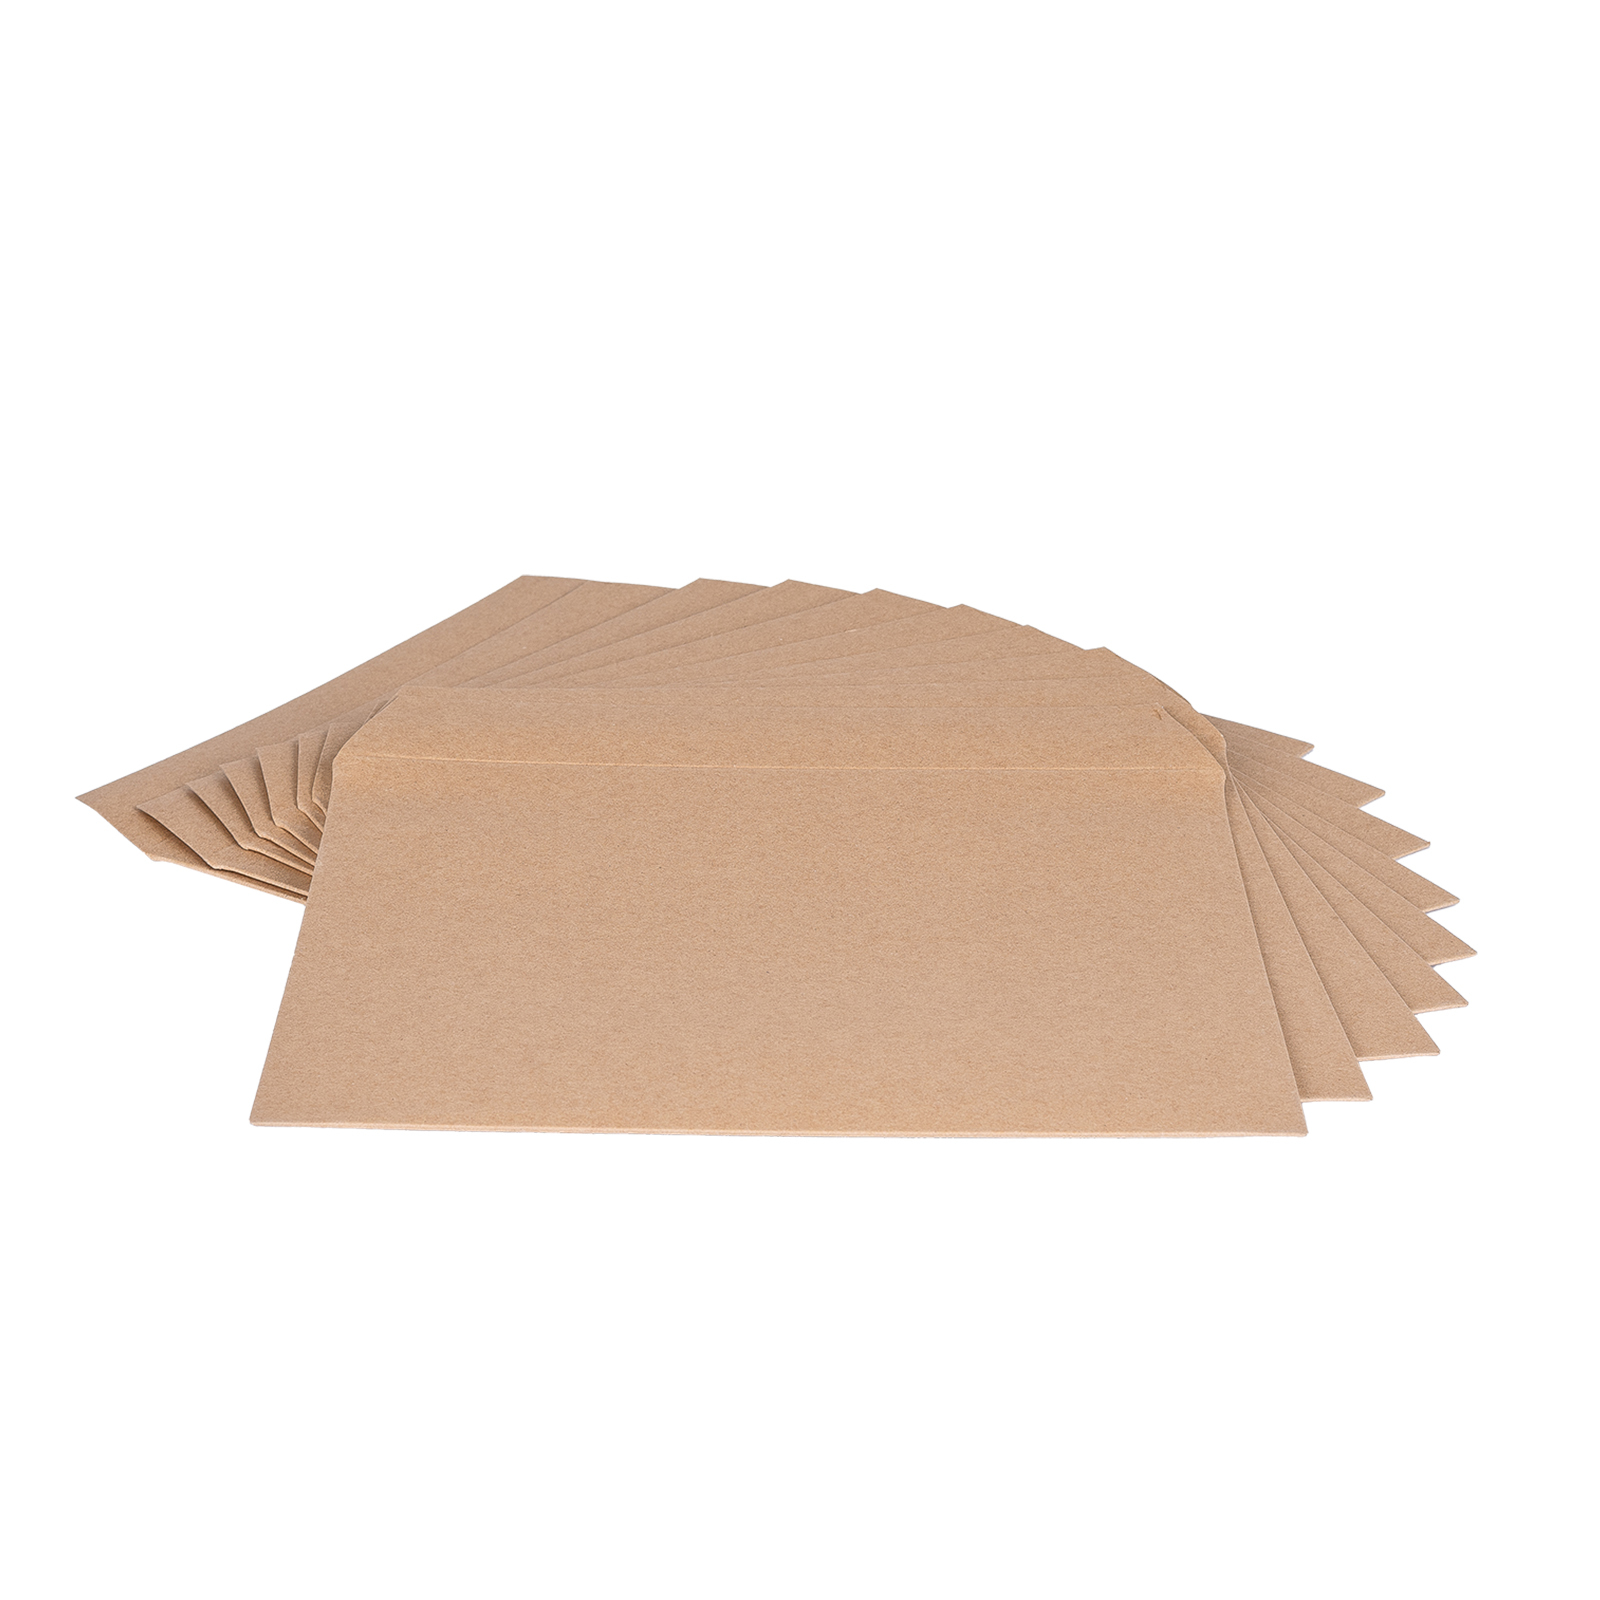 Wrap & Move 288 x 330mm Cardboard A4 Envelope - 10 Pack